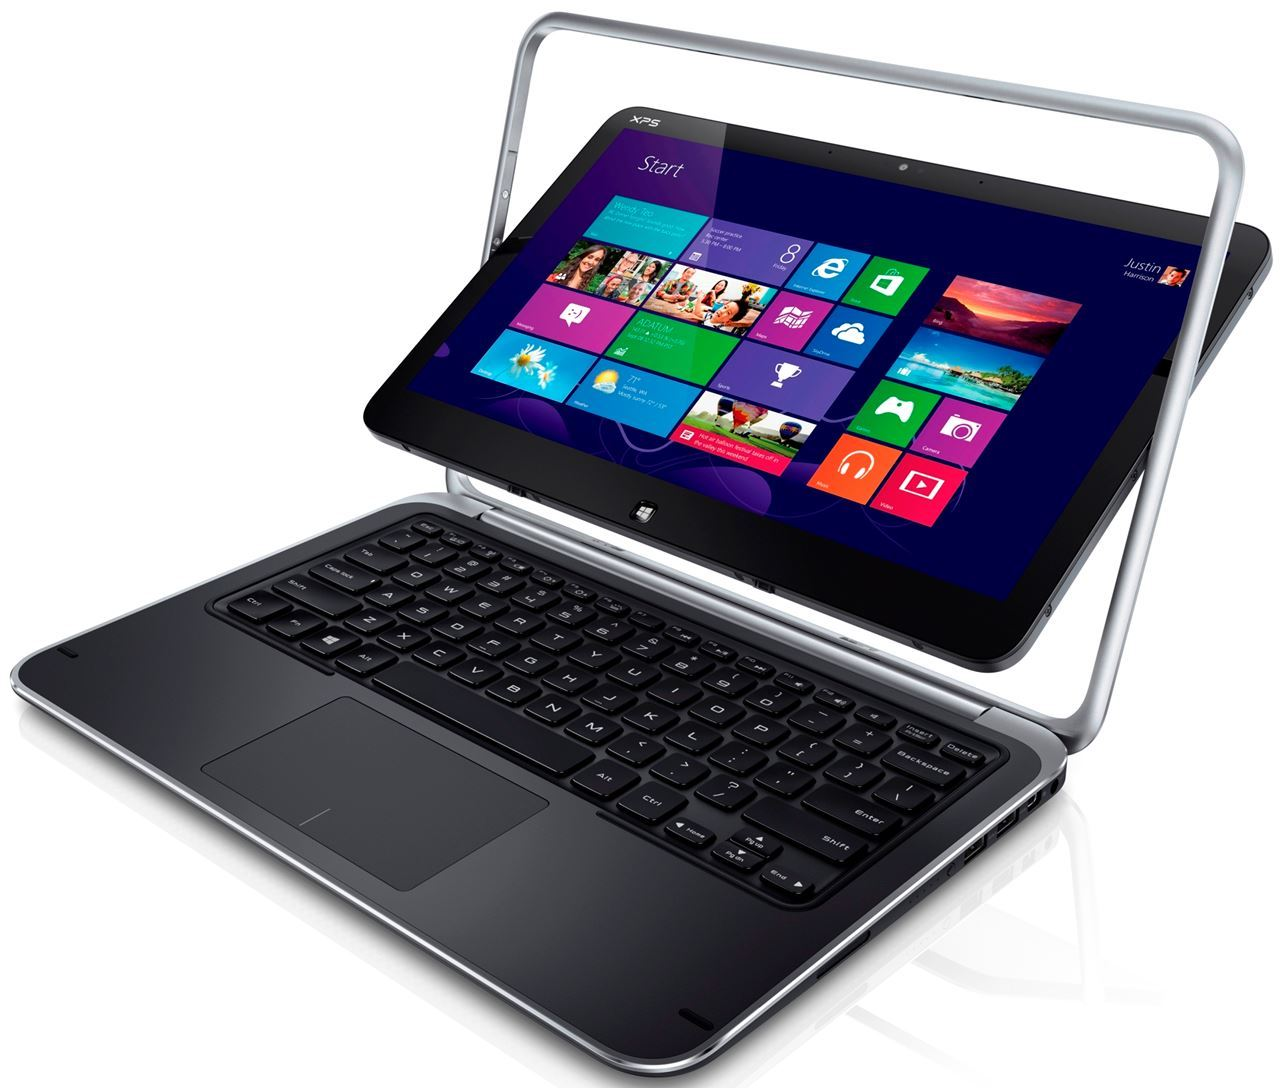 Dell XPS 12 Touch